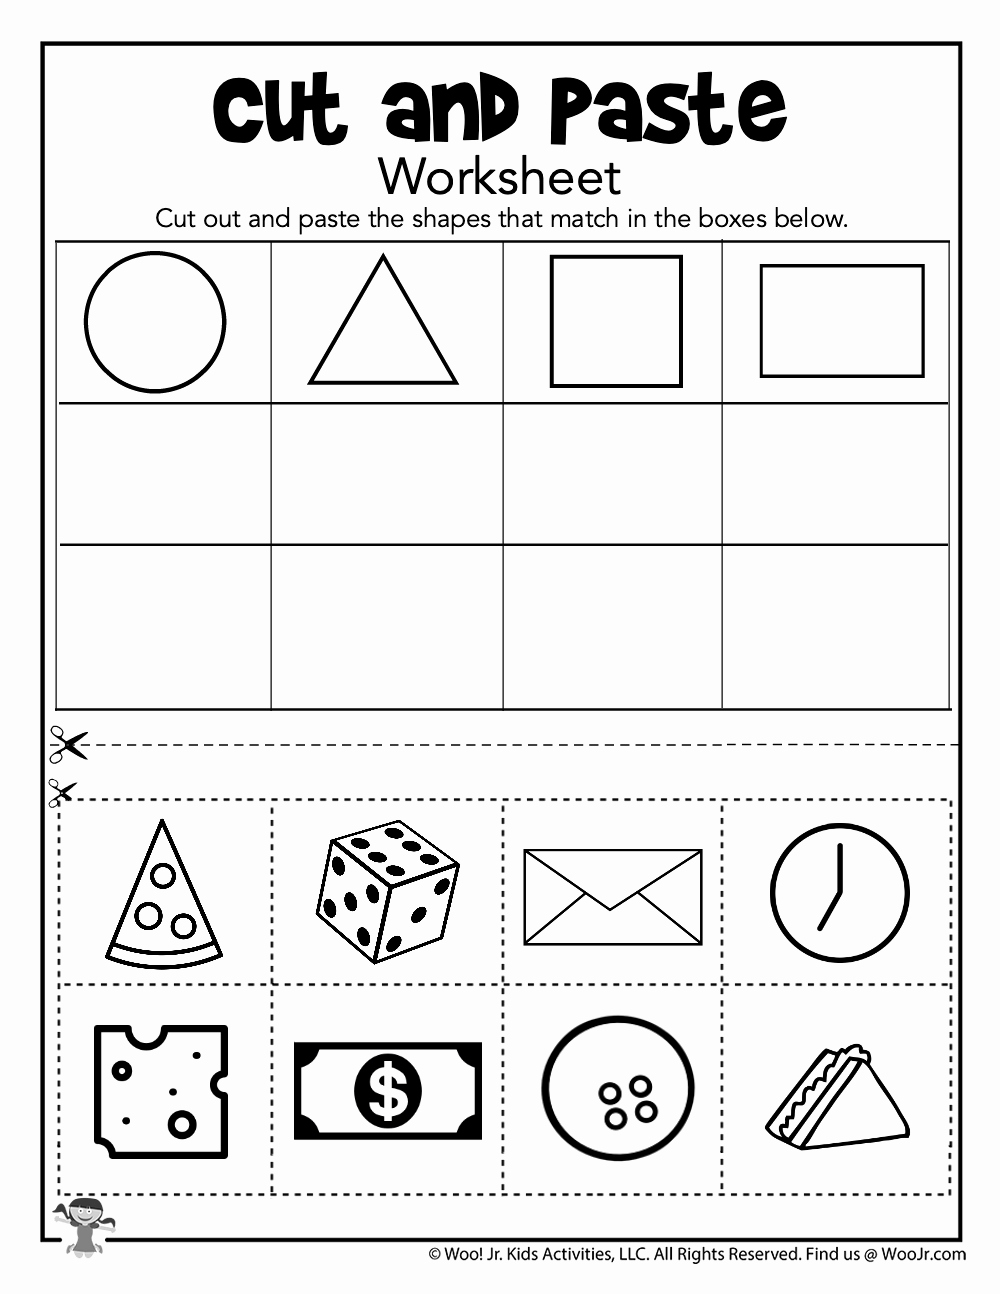 Kindergarten Cut and Paste Worksheets Unique Cut and Paste Shape sorting Worksheet